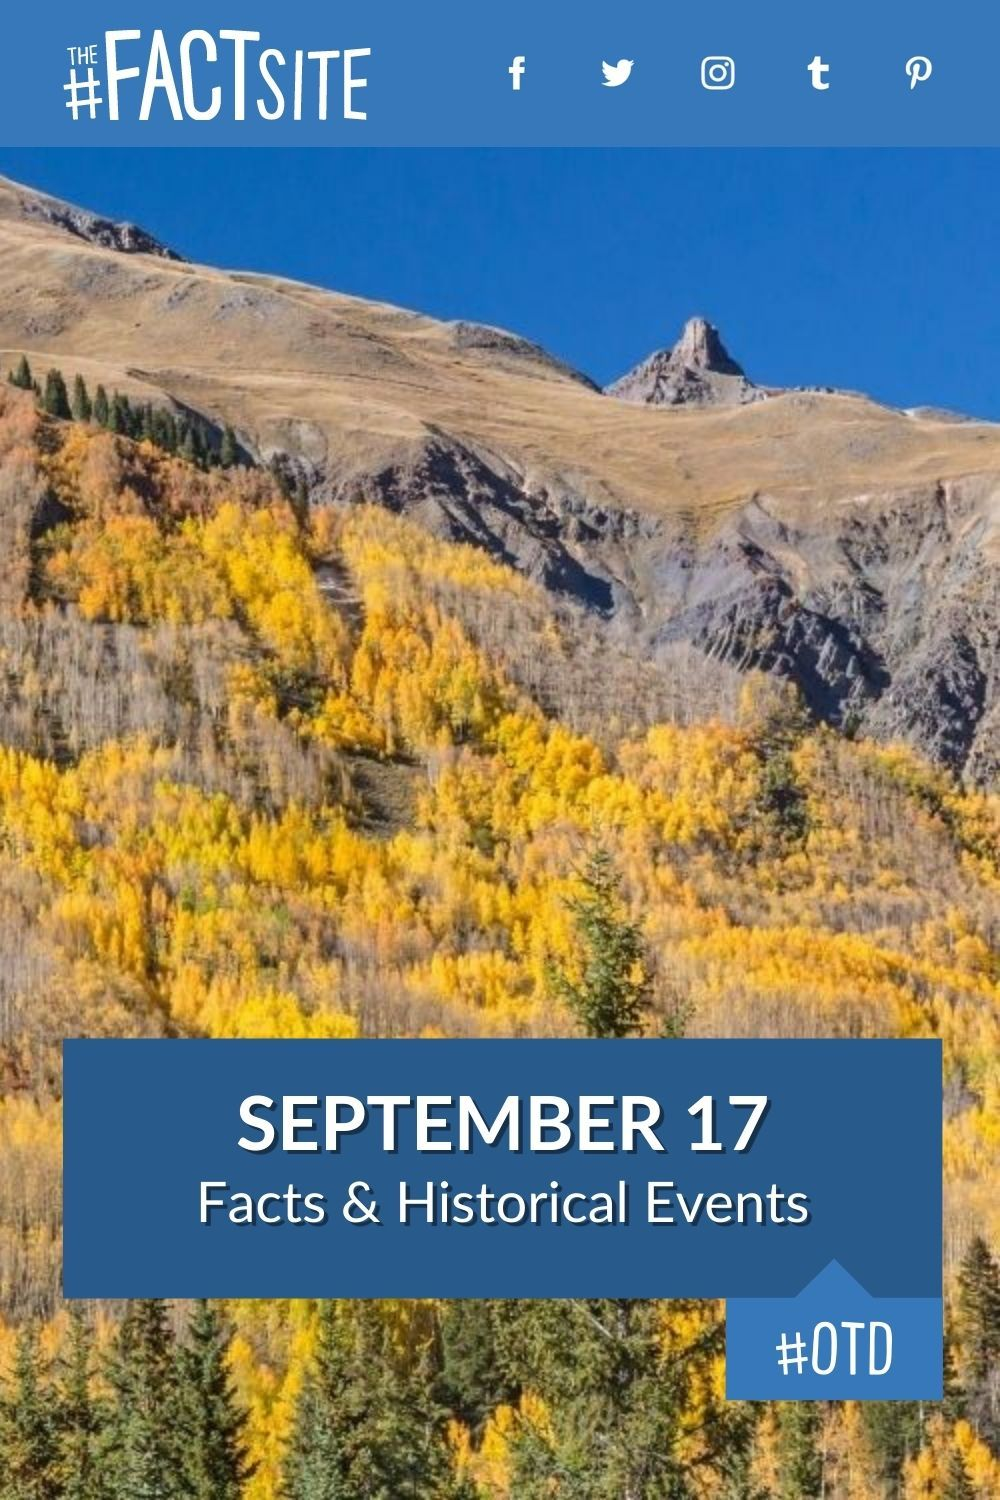 Facts & Historic Events That Happened on September 17